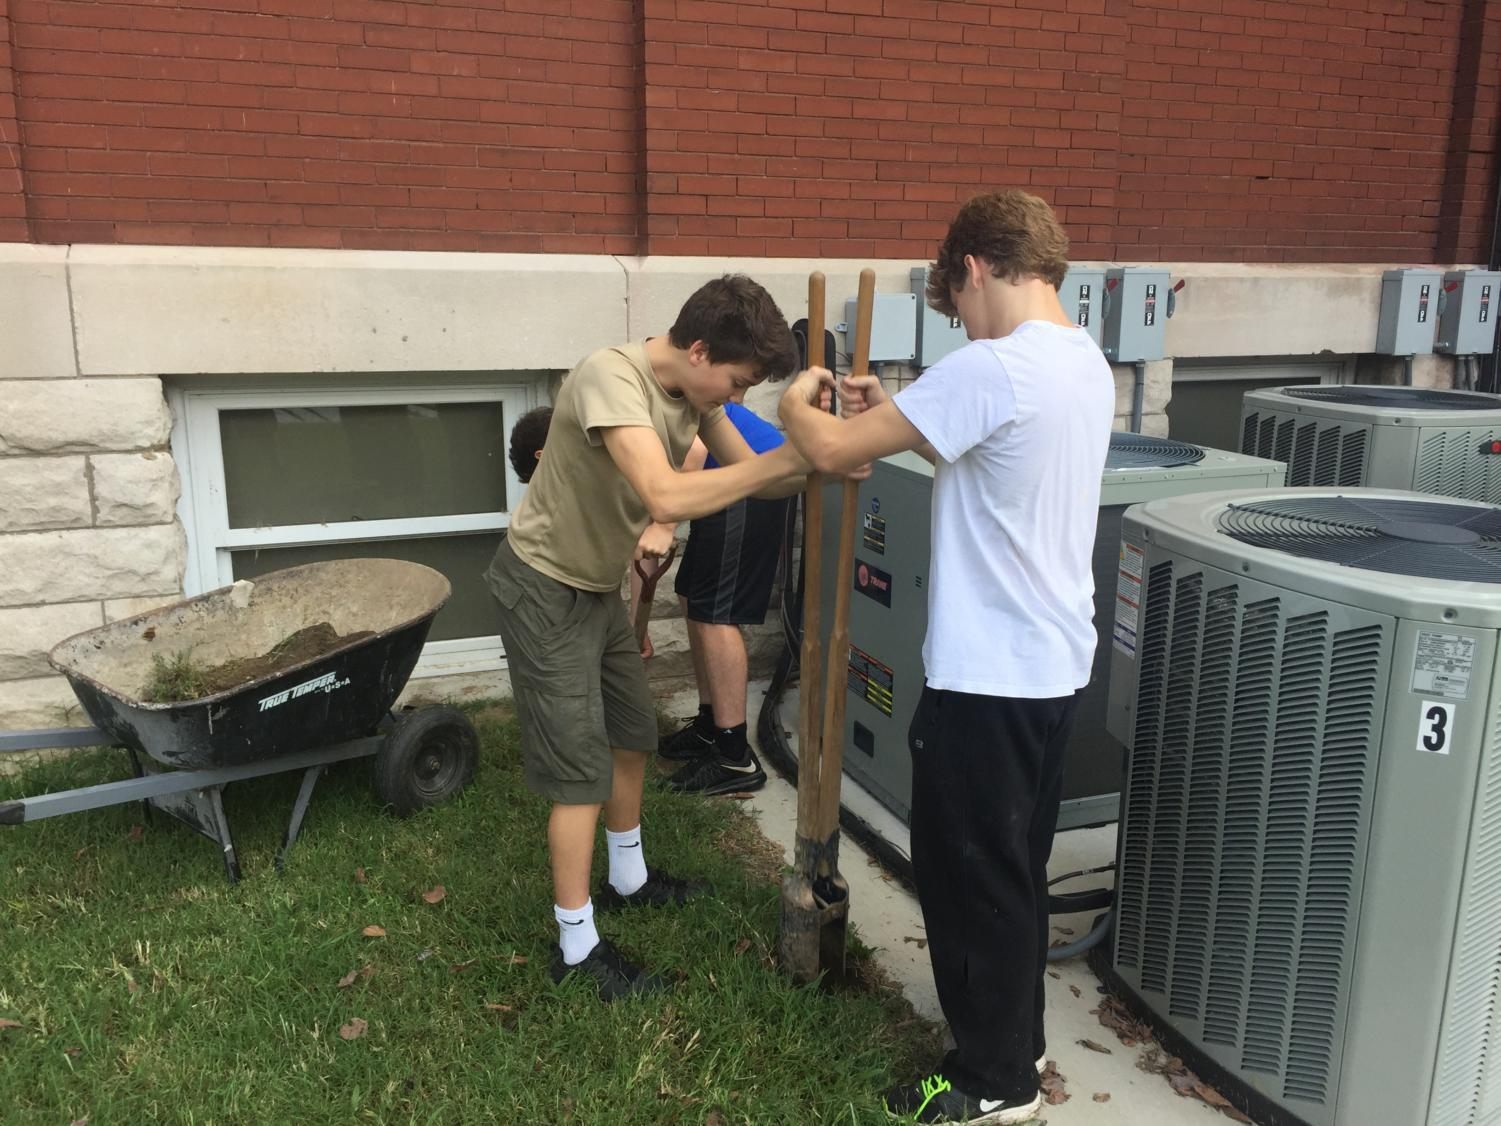 """Junior Brendan Gordon completes his Eagle Scout project at the Civil War Museum in Jefferson Barracks. Gordon also participates in other extracurricular activities such as volunteering at a retirement home and at the Manchester Church Choir. """"I think it's a good foundation they have going on there and I really like to give back to the community as best as I can,"""